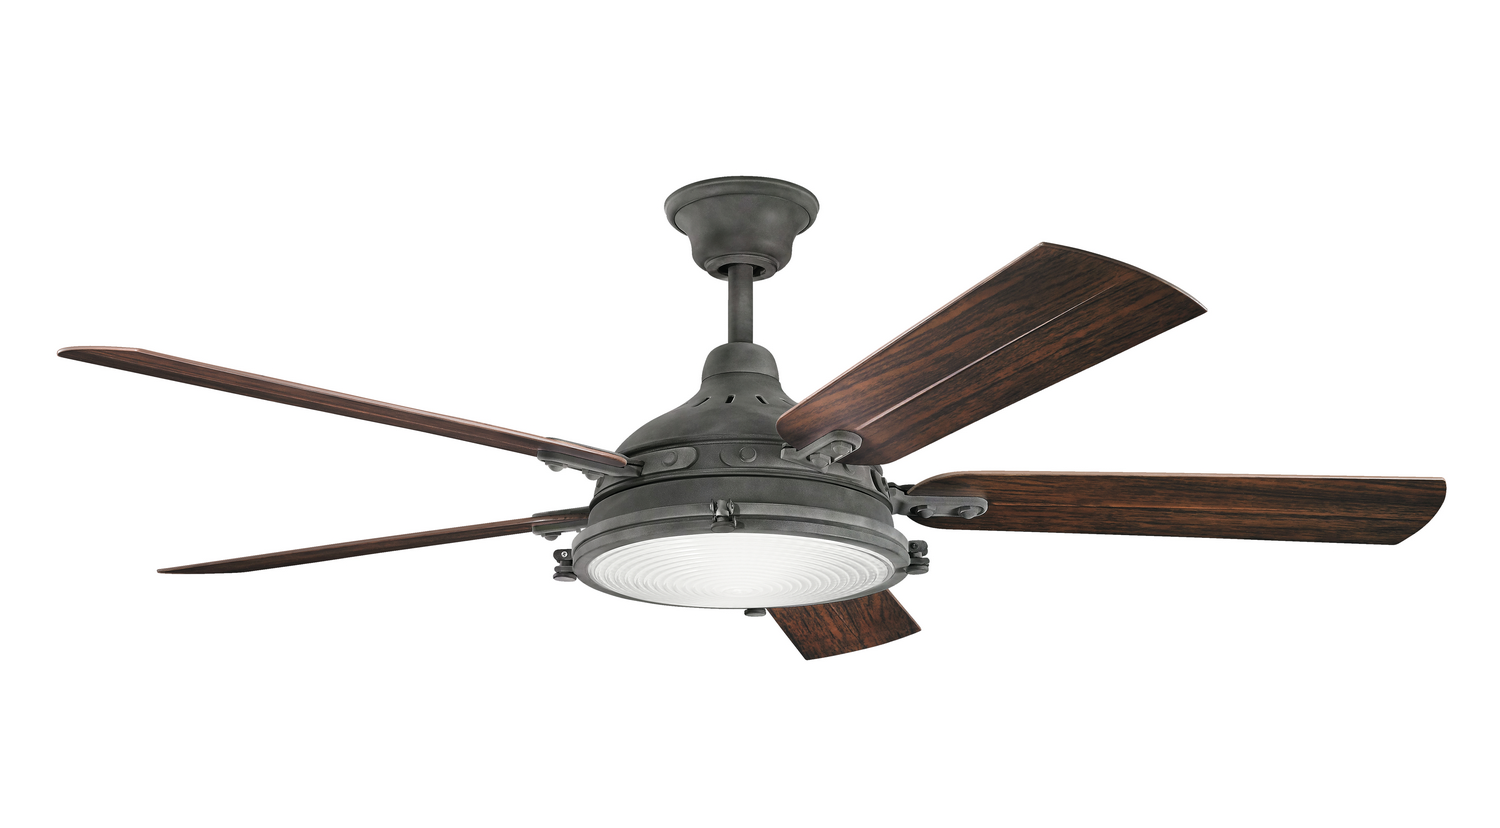 60 inchCeiling Fan from the Patio collection by Kichler 310117WZC